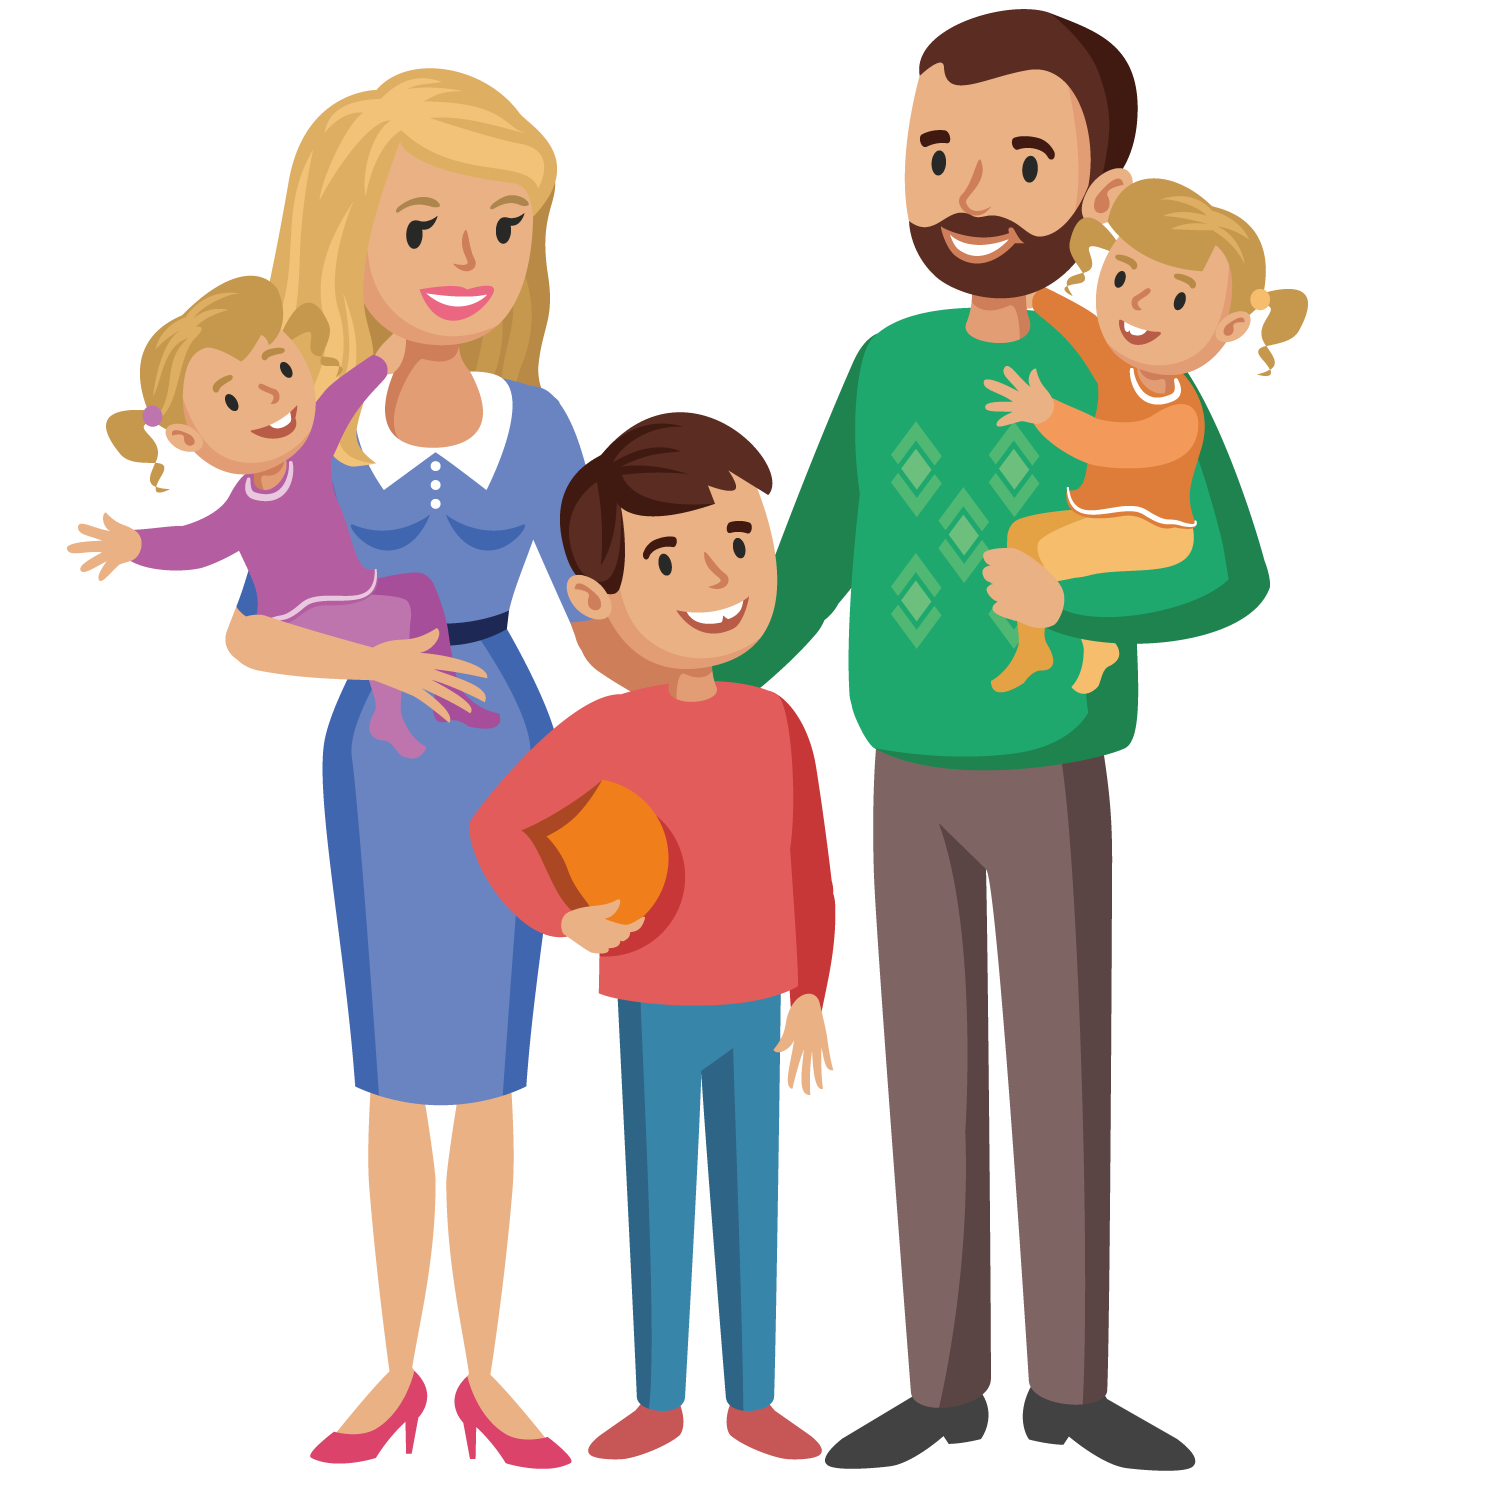 clipart happy parents complete parent transparent illustration traveller elite tour conversation transprent